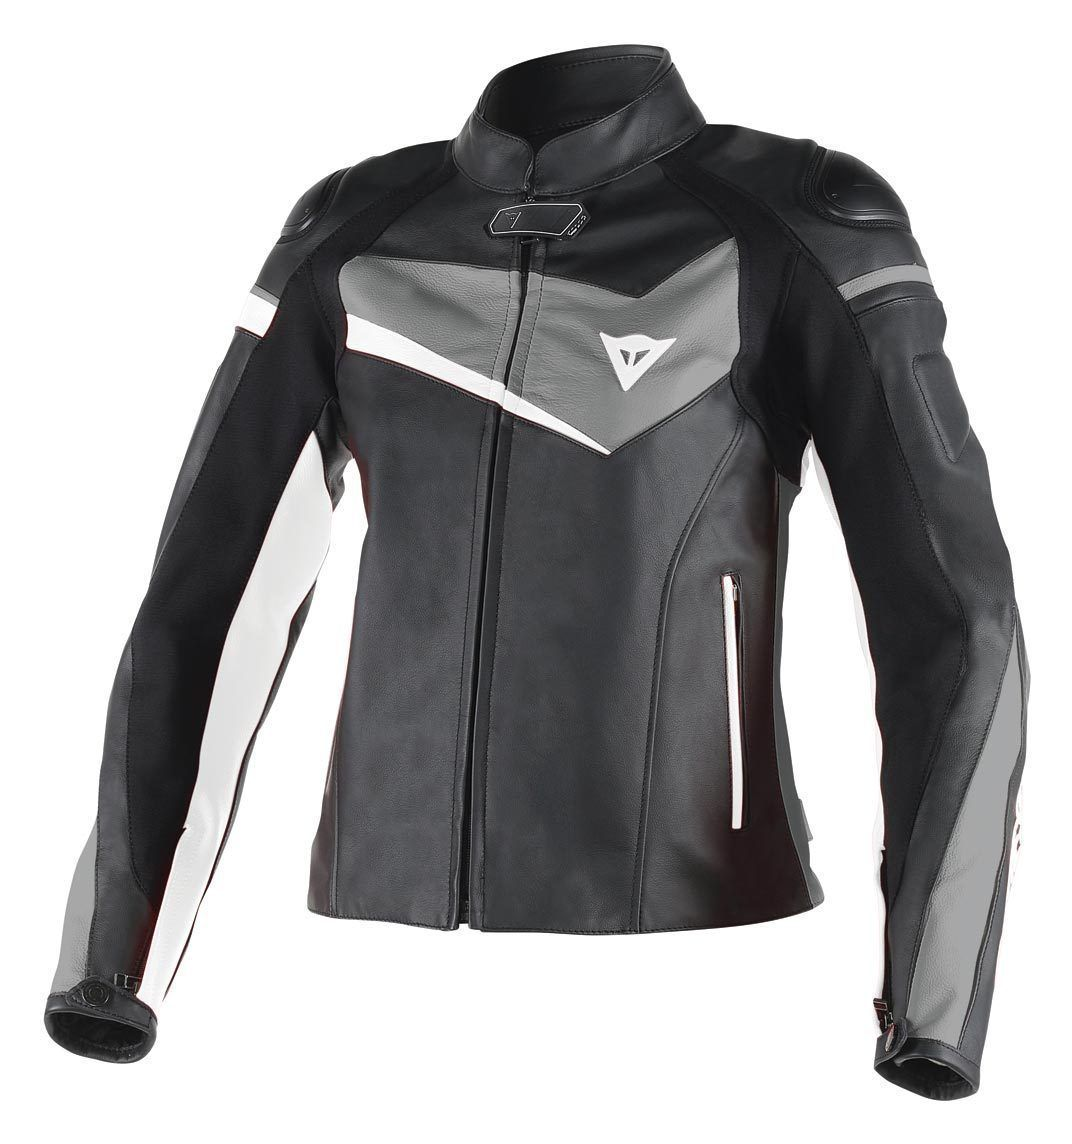 Dainese Veloster Women's Leather Jacket - RevZilla